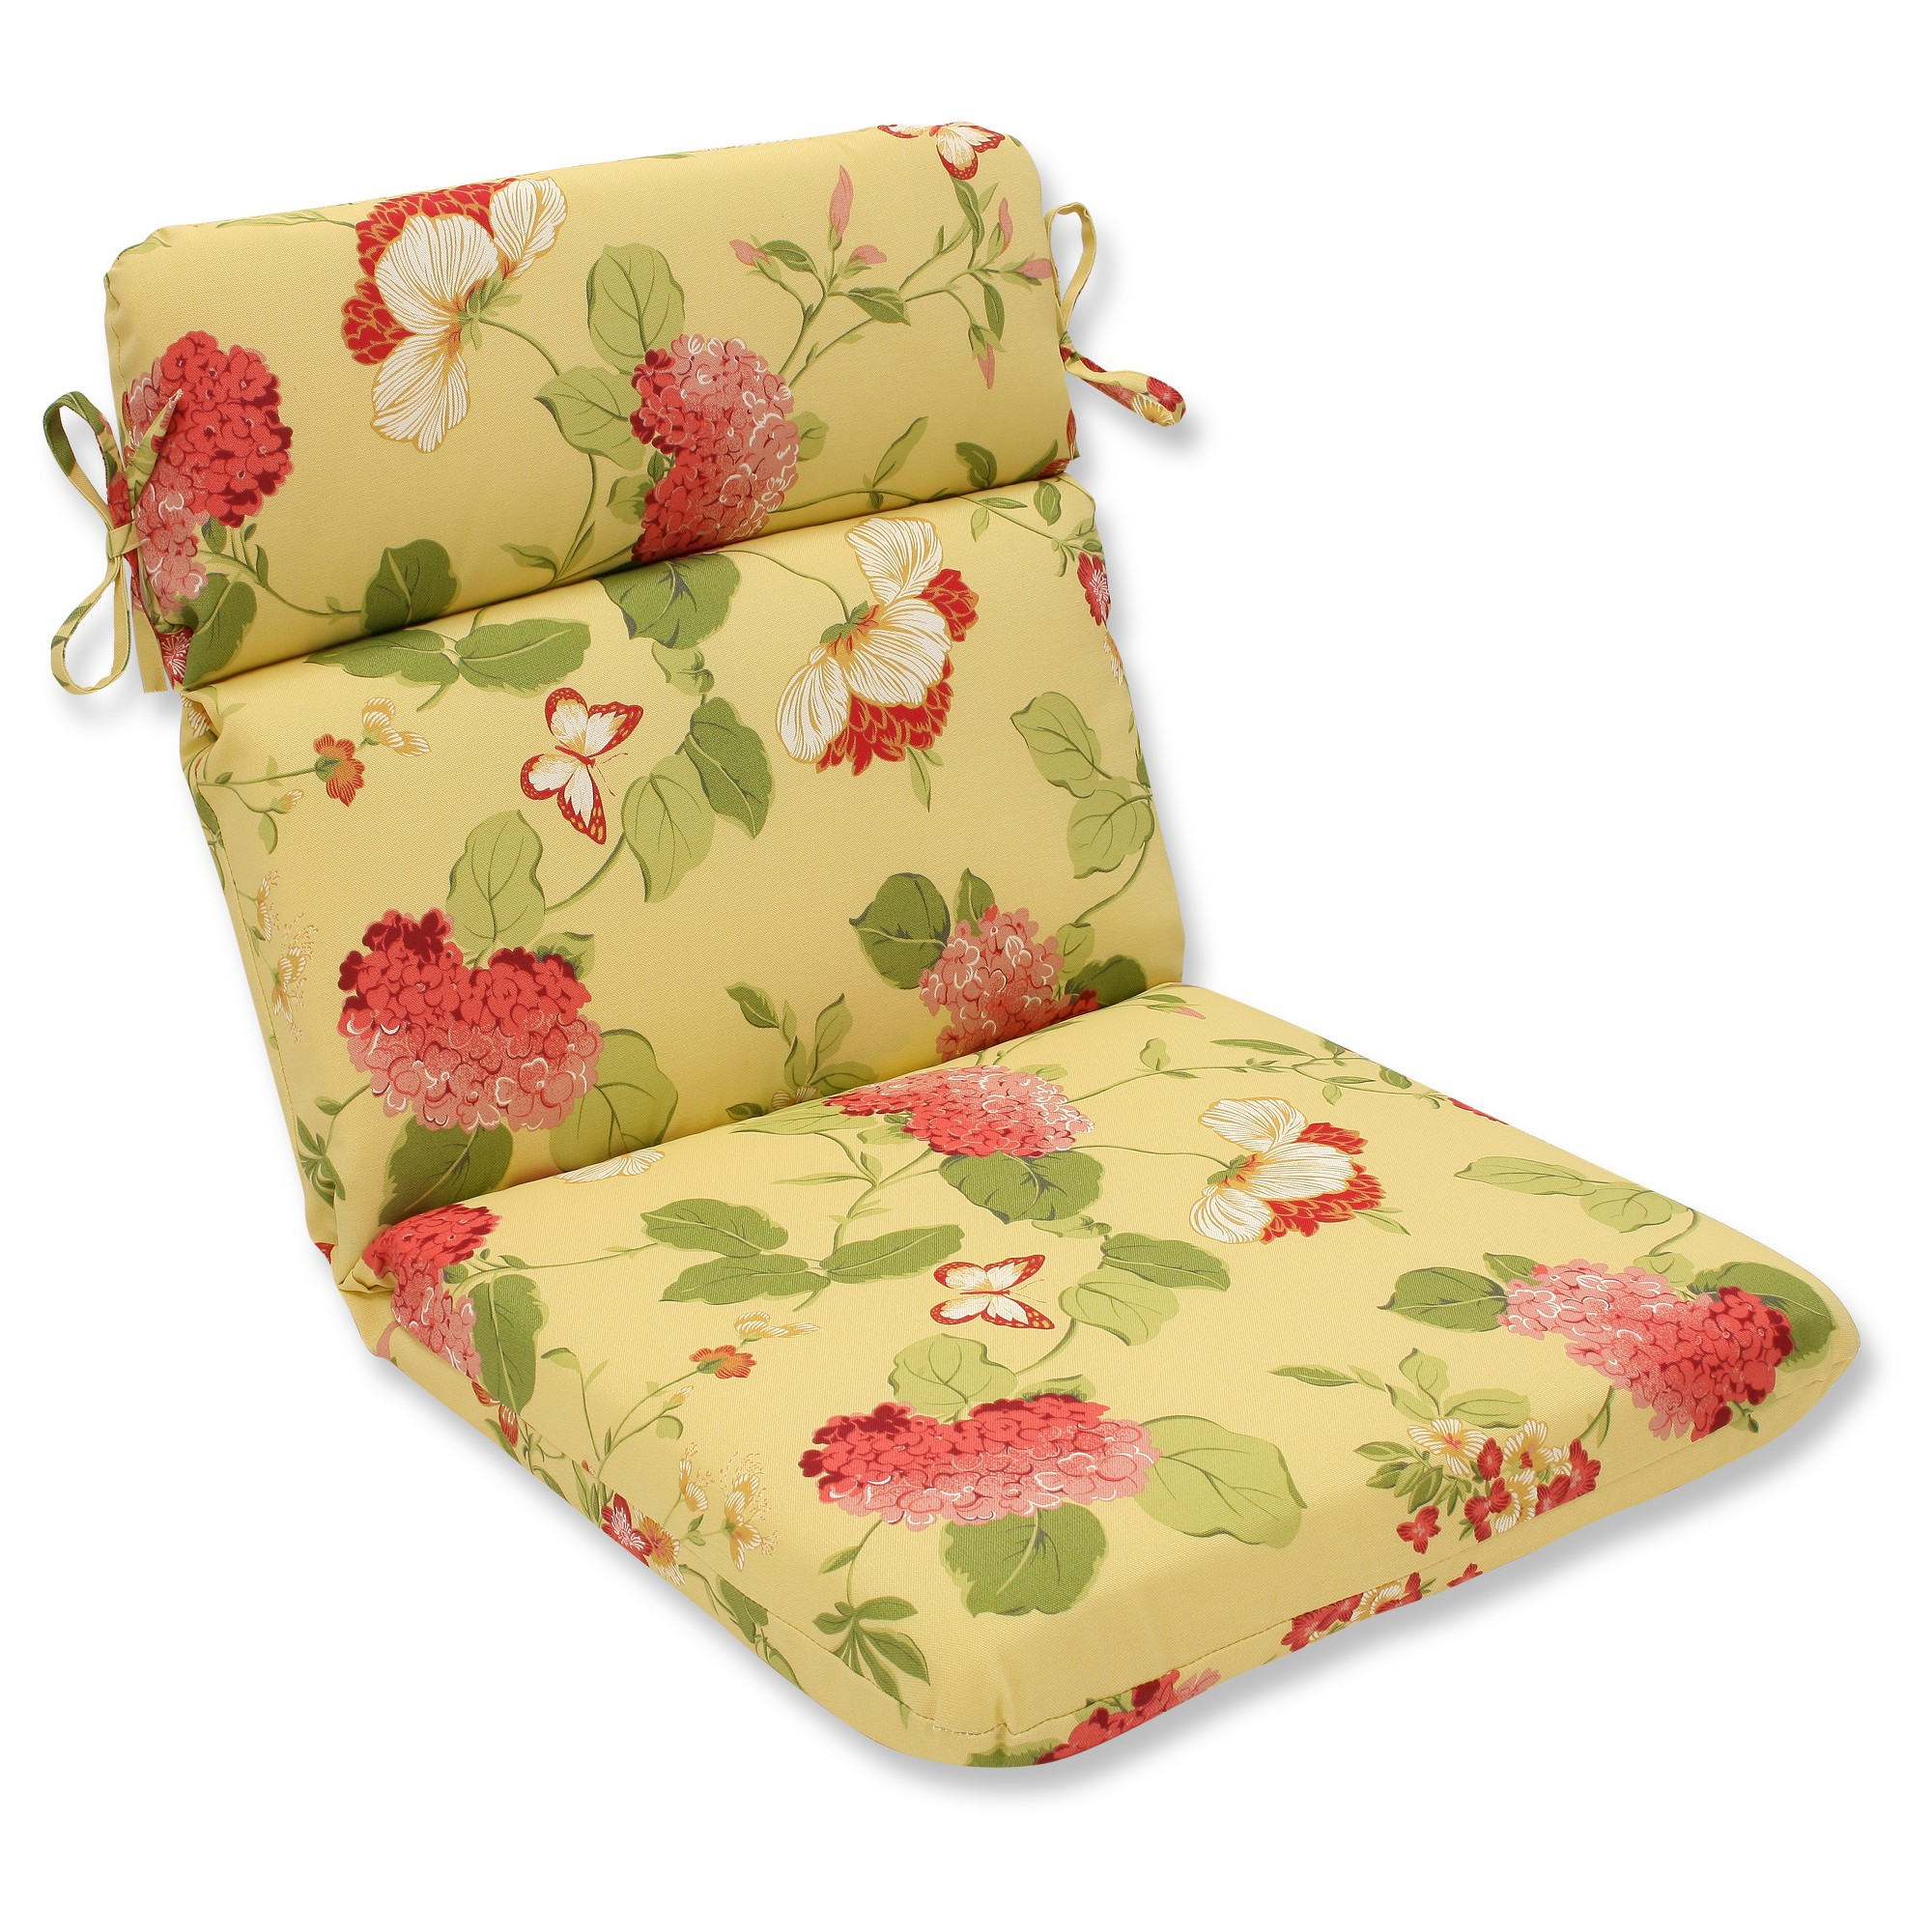 Outdoor Rounded Chair Cushion Yellow/Red Floral Indoor